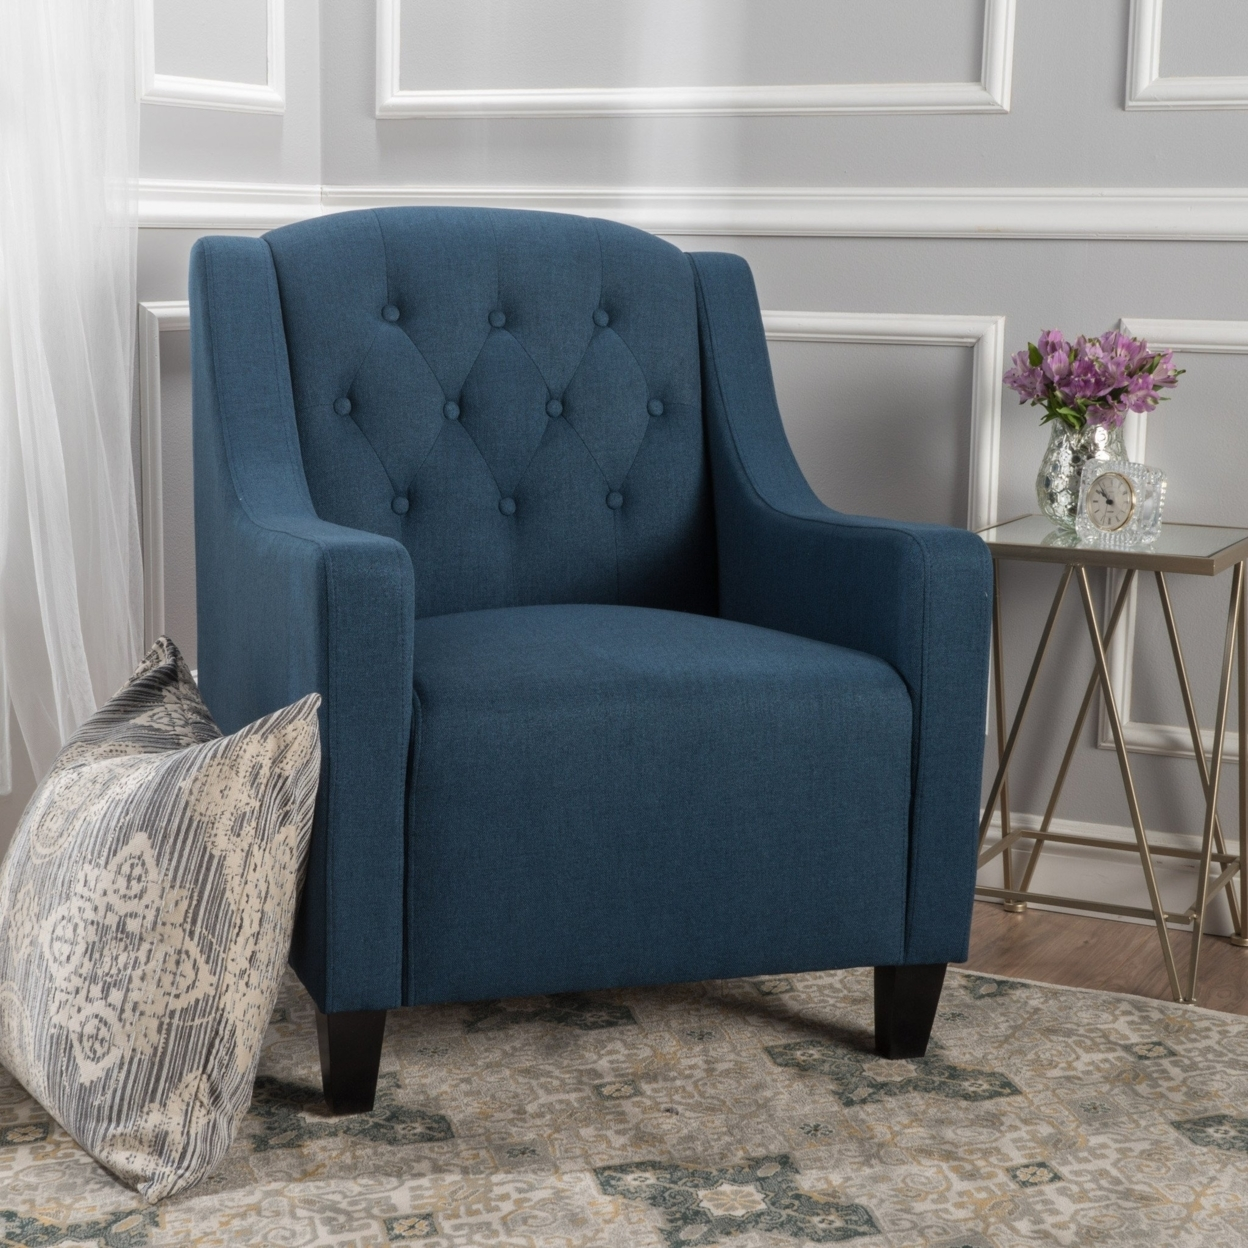 Bremner Tufted Back Club Chair - Royal Blue 5936d4dac98fc47d1350ed7d